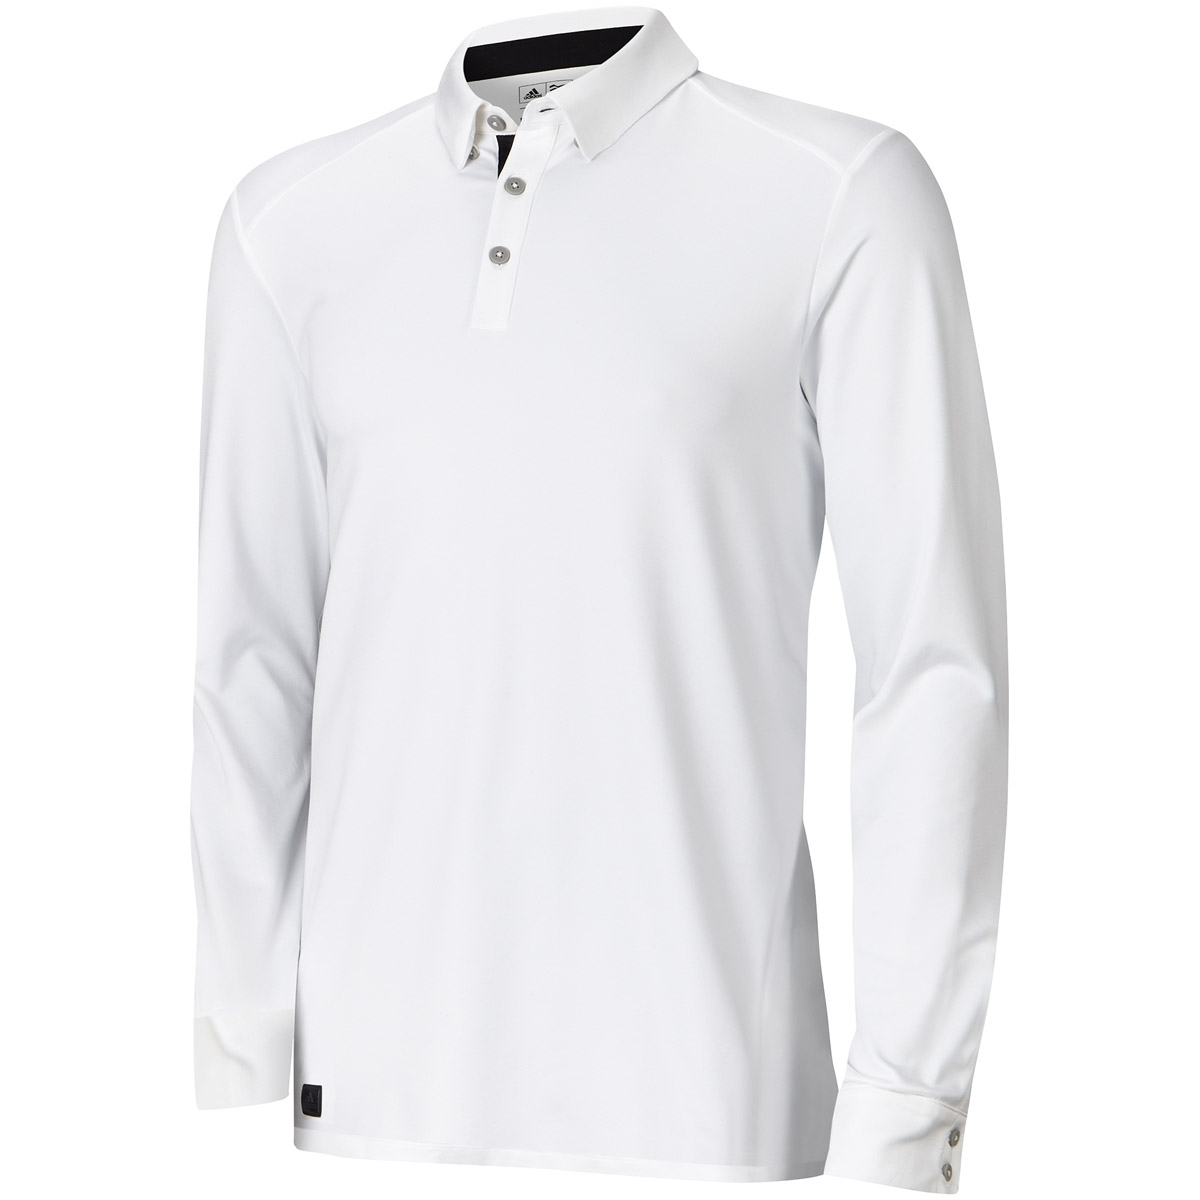 Adidas golf 2015 mens fall weight heather long sleeve polo for Polo golf shirts for men